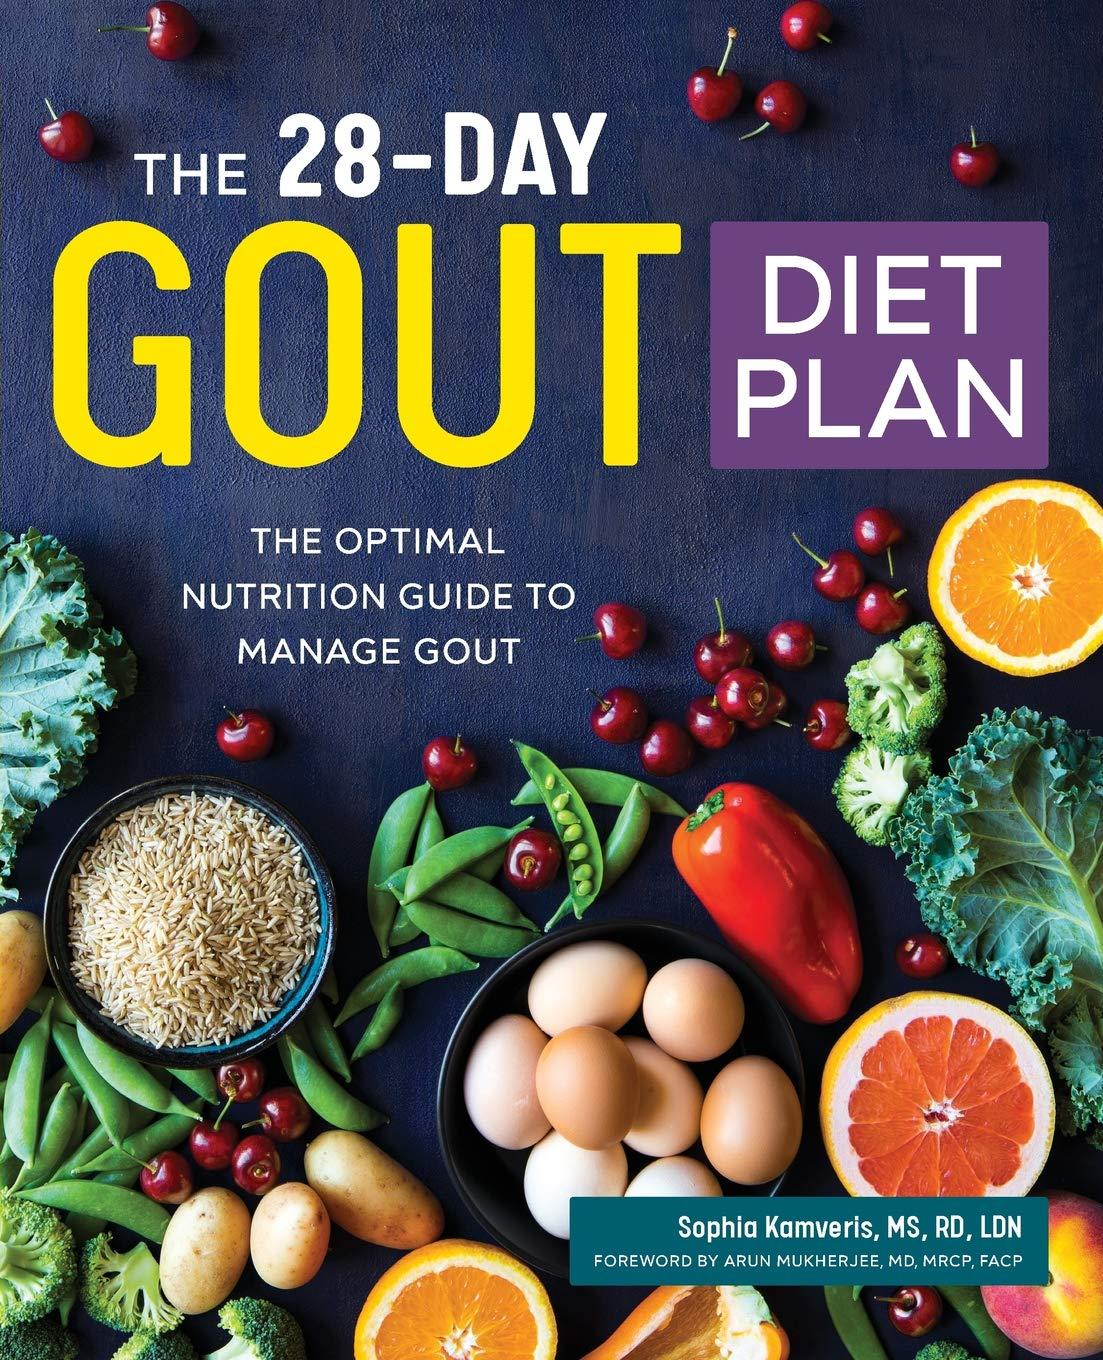 The 28-Day Gout Diet Plan: The Optimal Nutrition Guide to